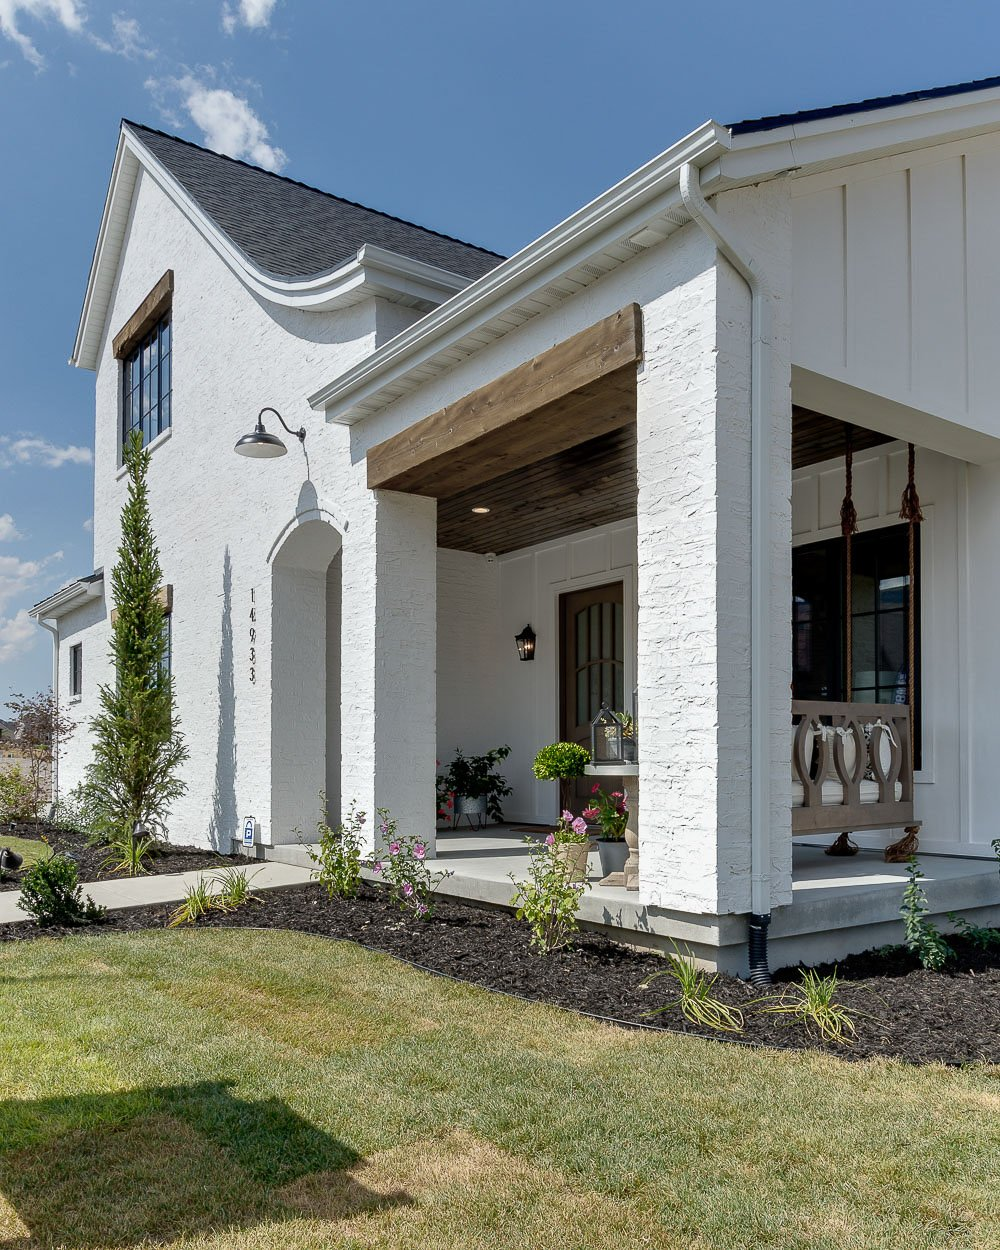 Modern Farmhouse Exterior. Simons Design Studio